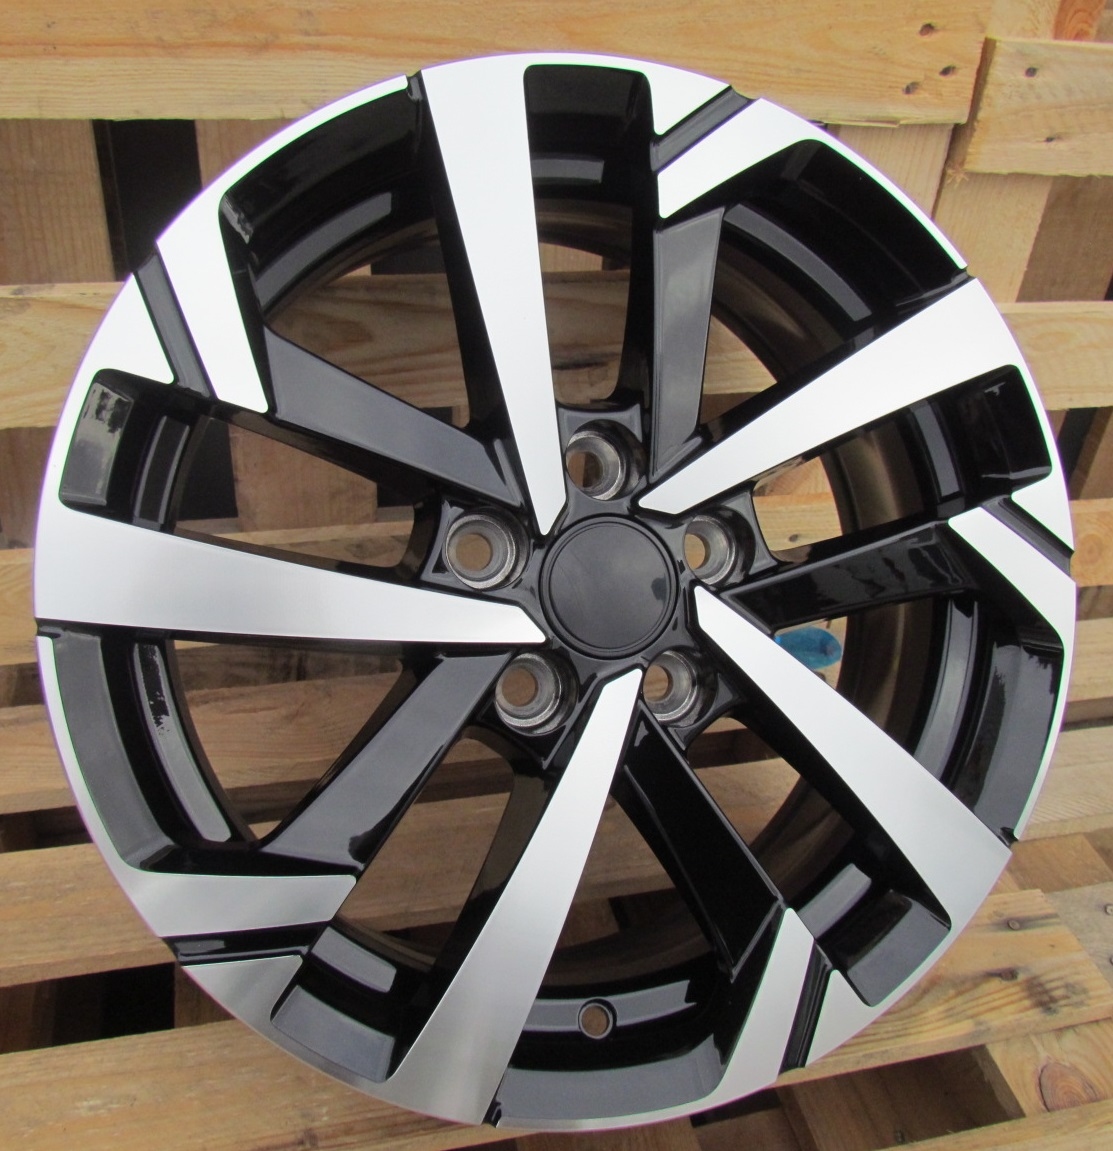 W15X6 5X100 ET40 57.1 XFE276 MB+Powder coating RWR W (P1)## 6x15 ET40 5x100